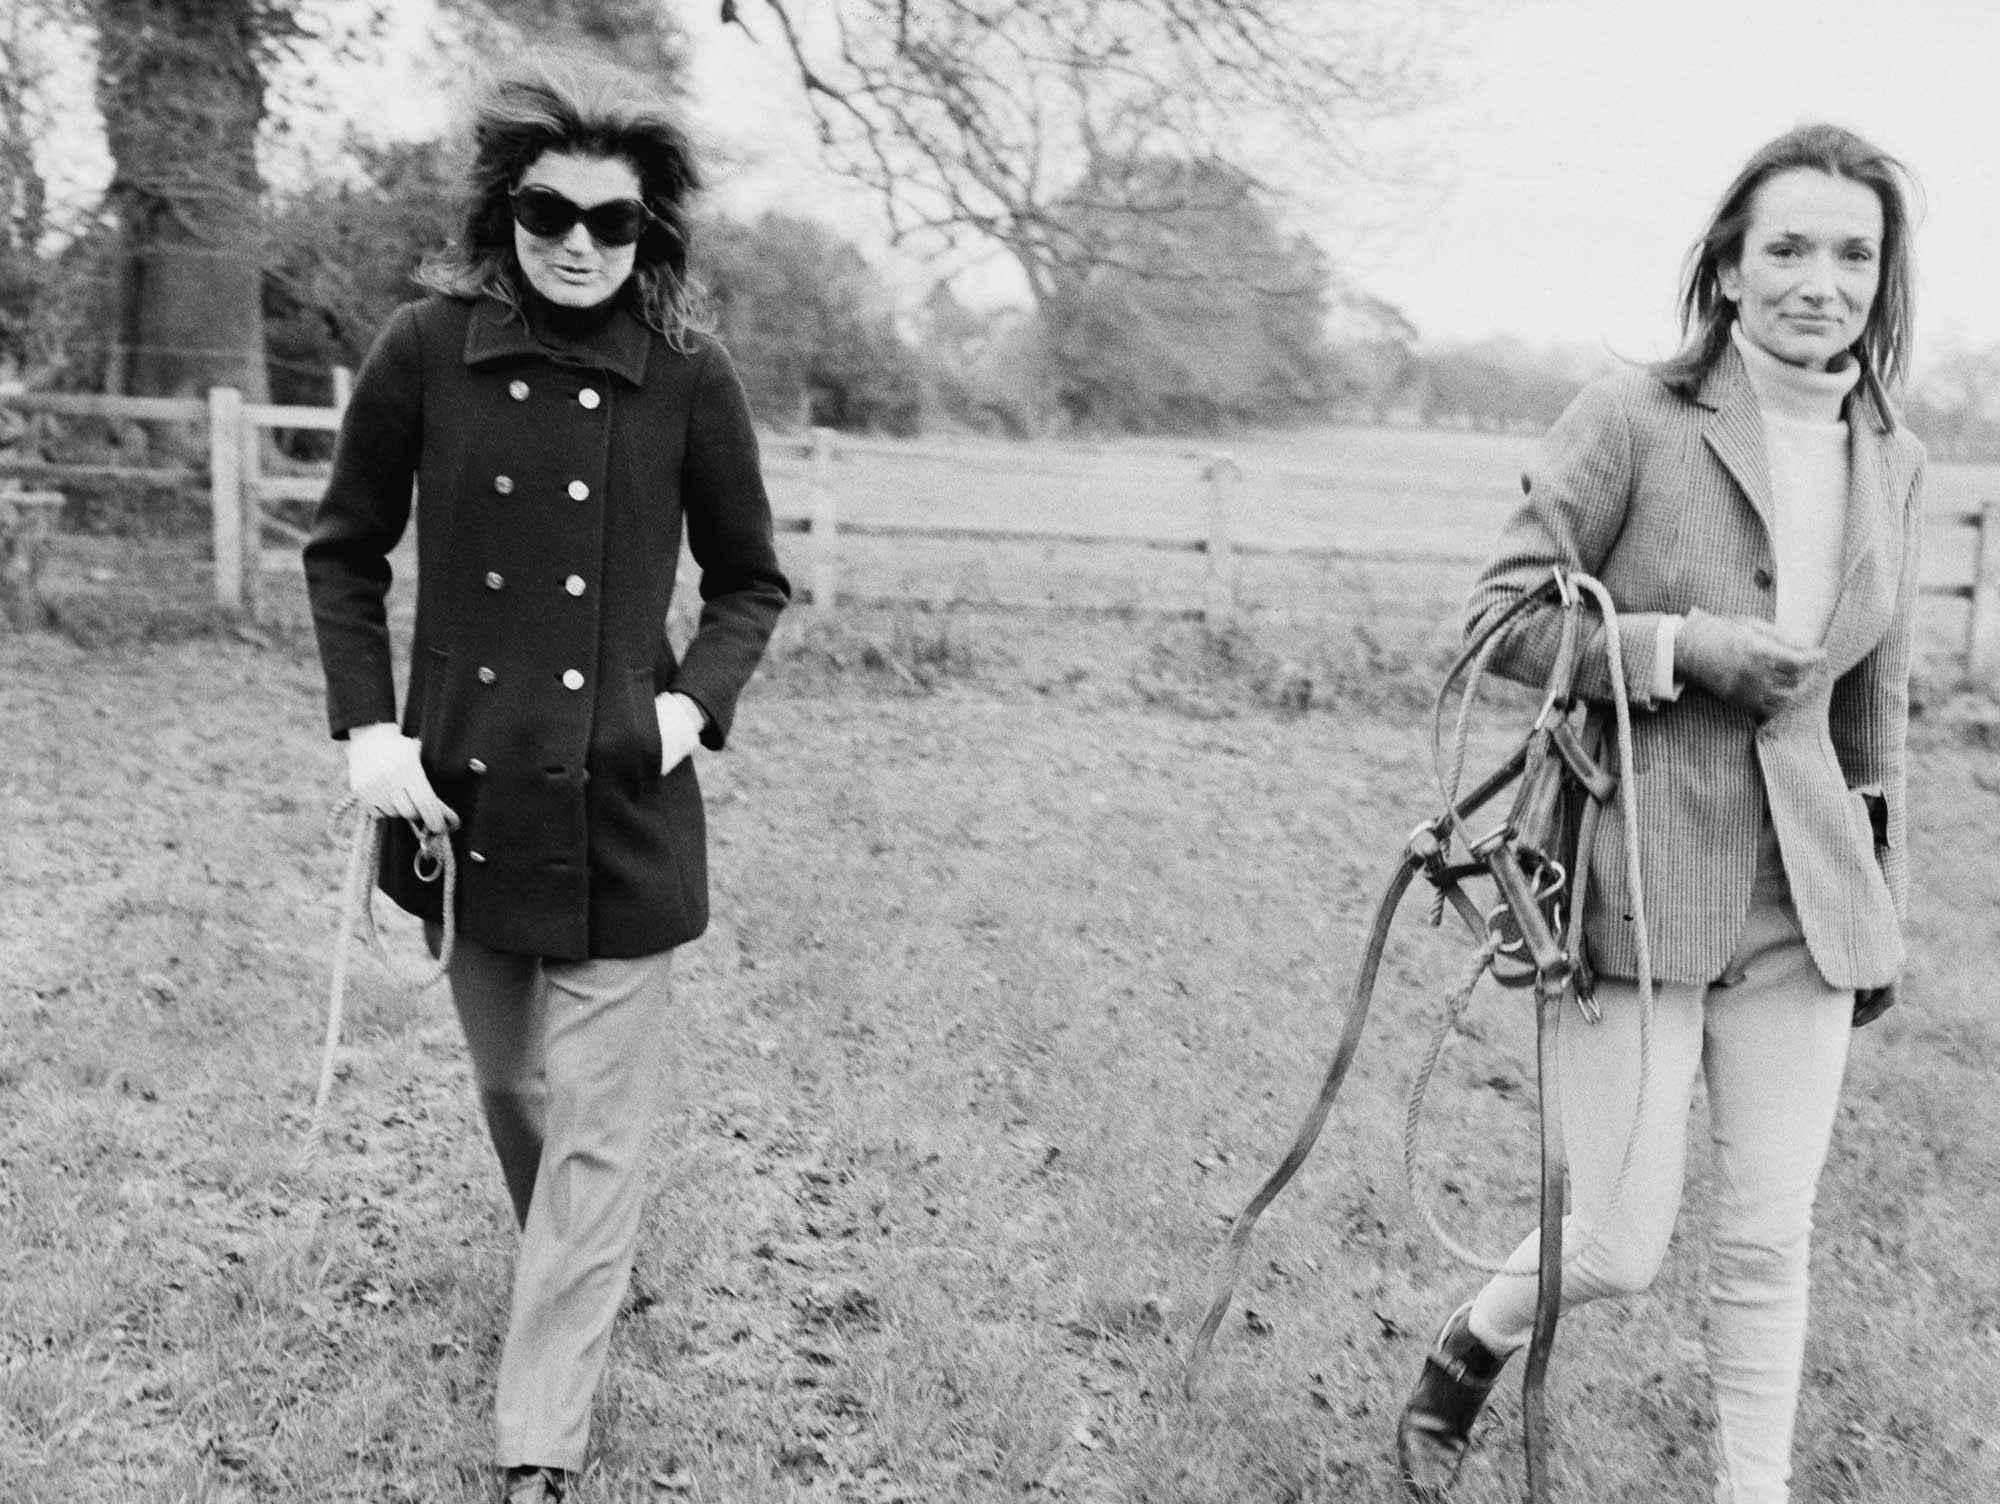 Lee Radziwill (right) with her sister Jacqueline Kennedy Onassis